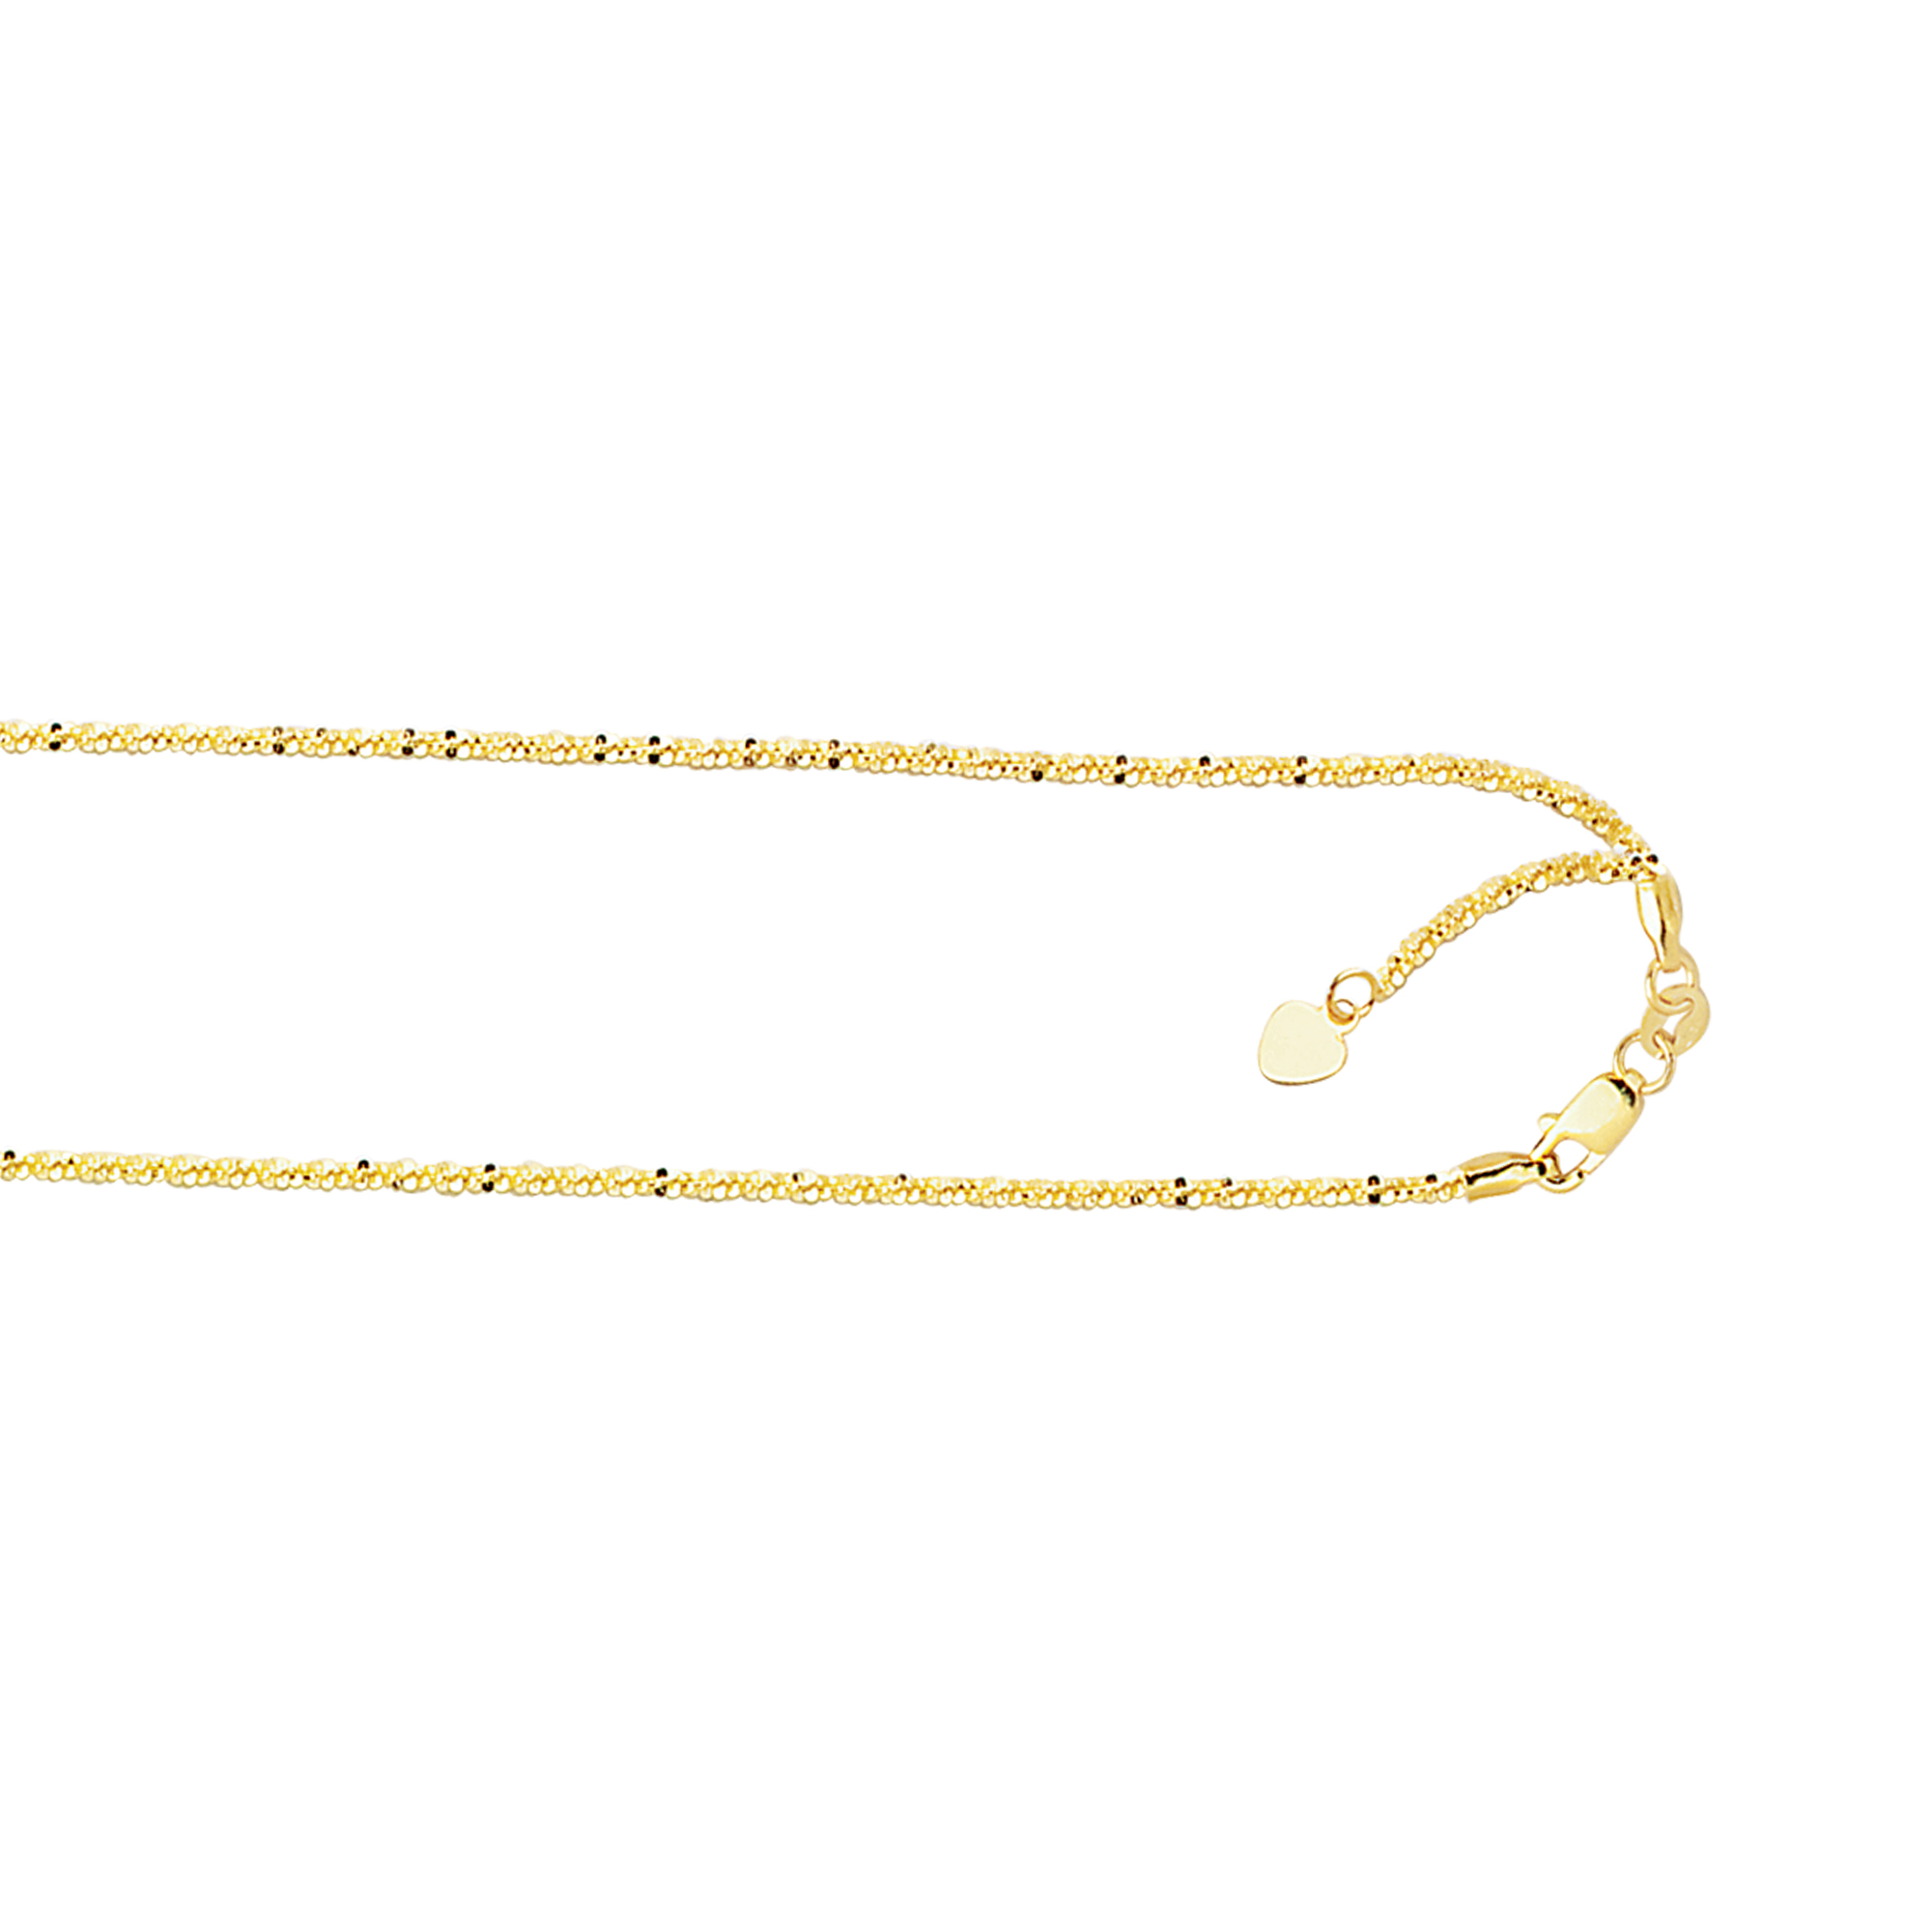 LUXURMAN Solid 10k Gold Sparkle Chain For Women Adjustable 1.5mm